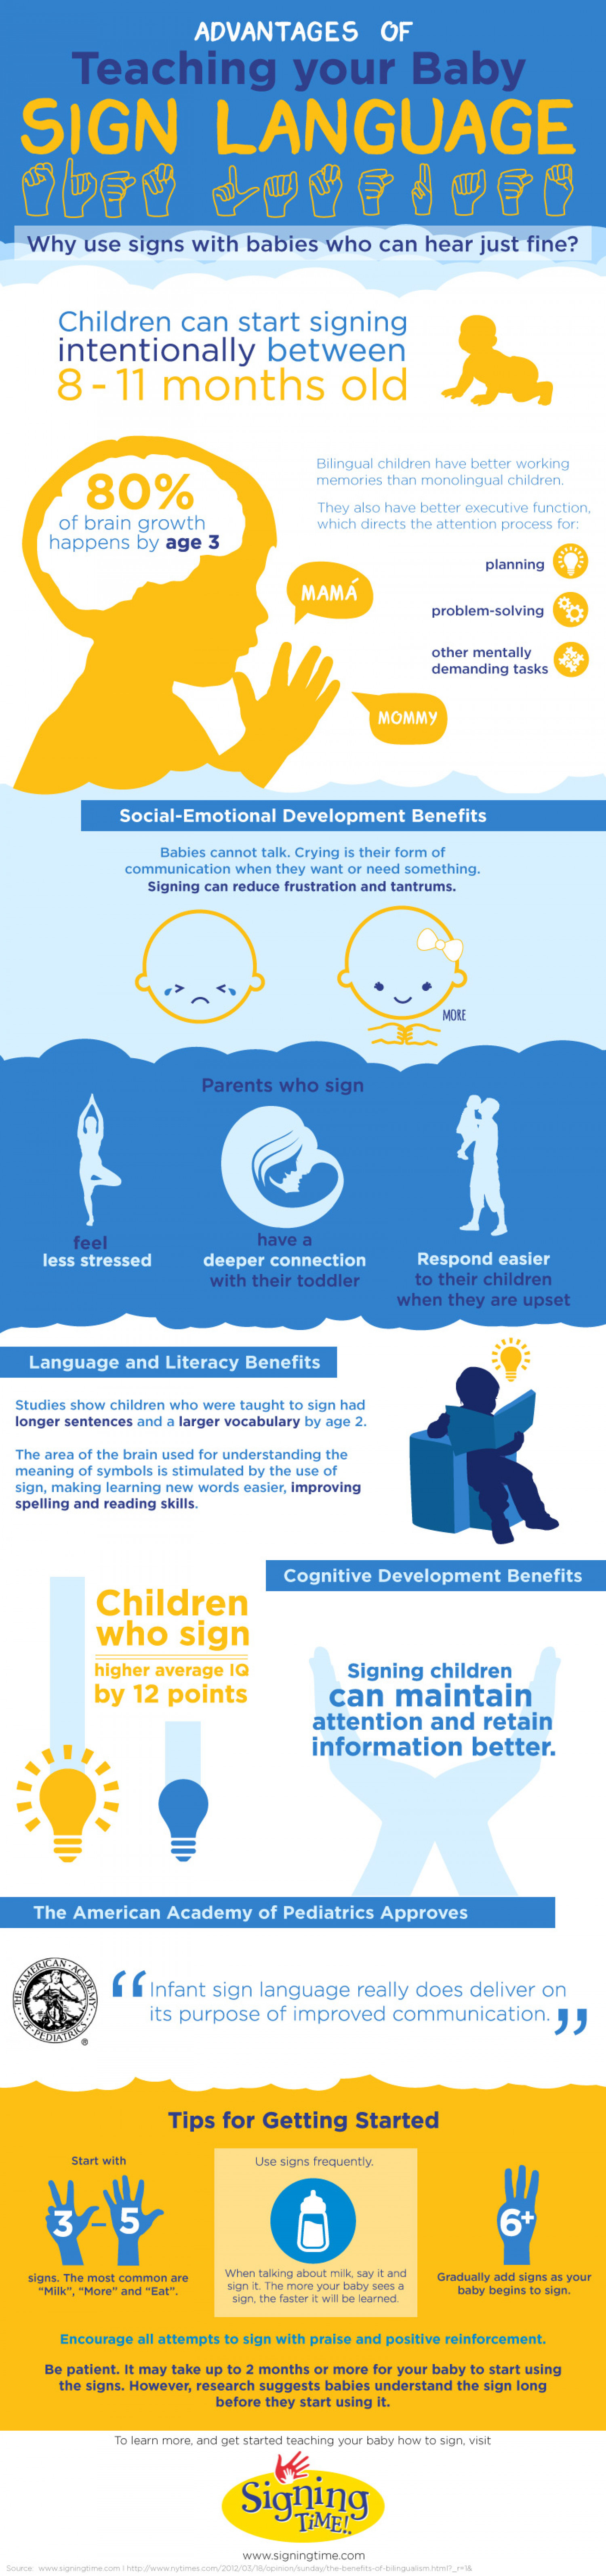 Advantages of Teaching Baby Sign Language Infographic